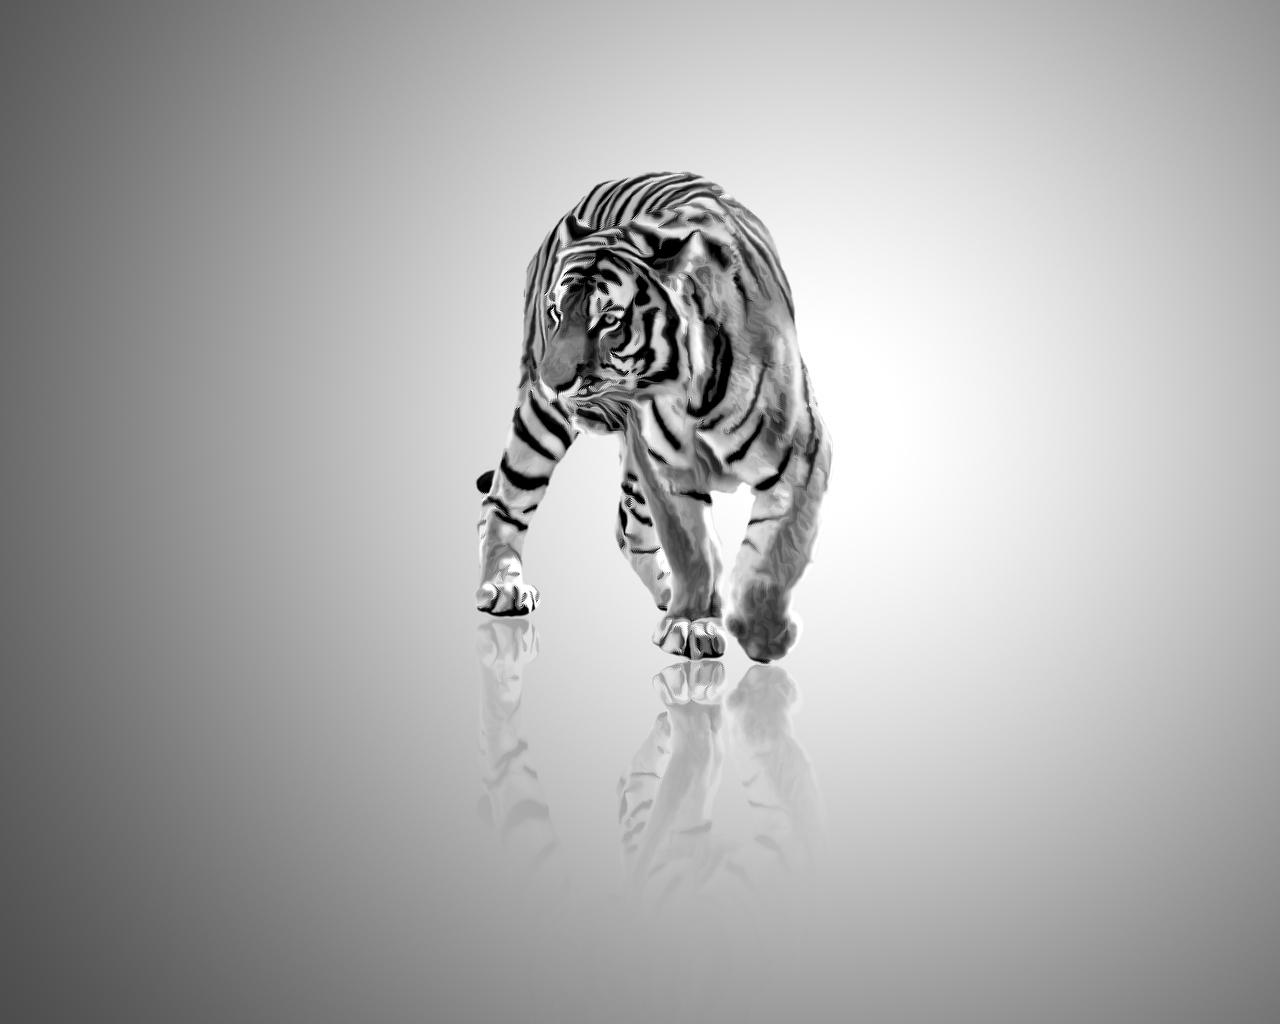 Tiger, black and white by tompot on DeviantArt